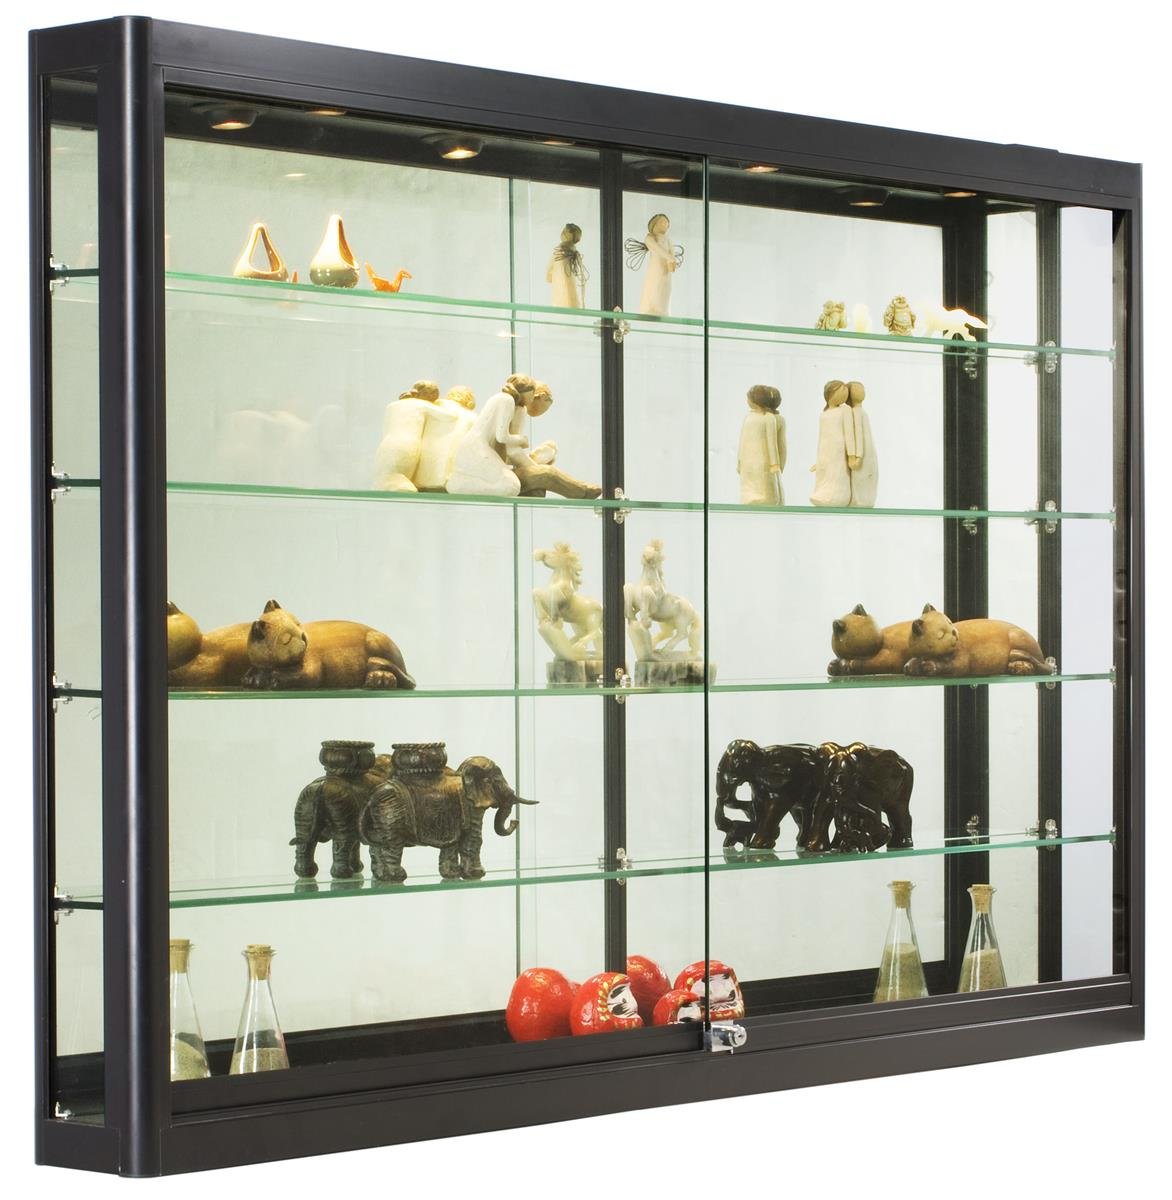 price cabinet wall mounted display finder calibex mount zoom glass cabinets